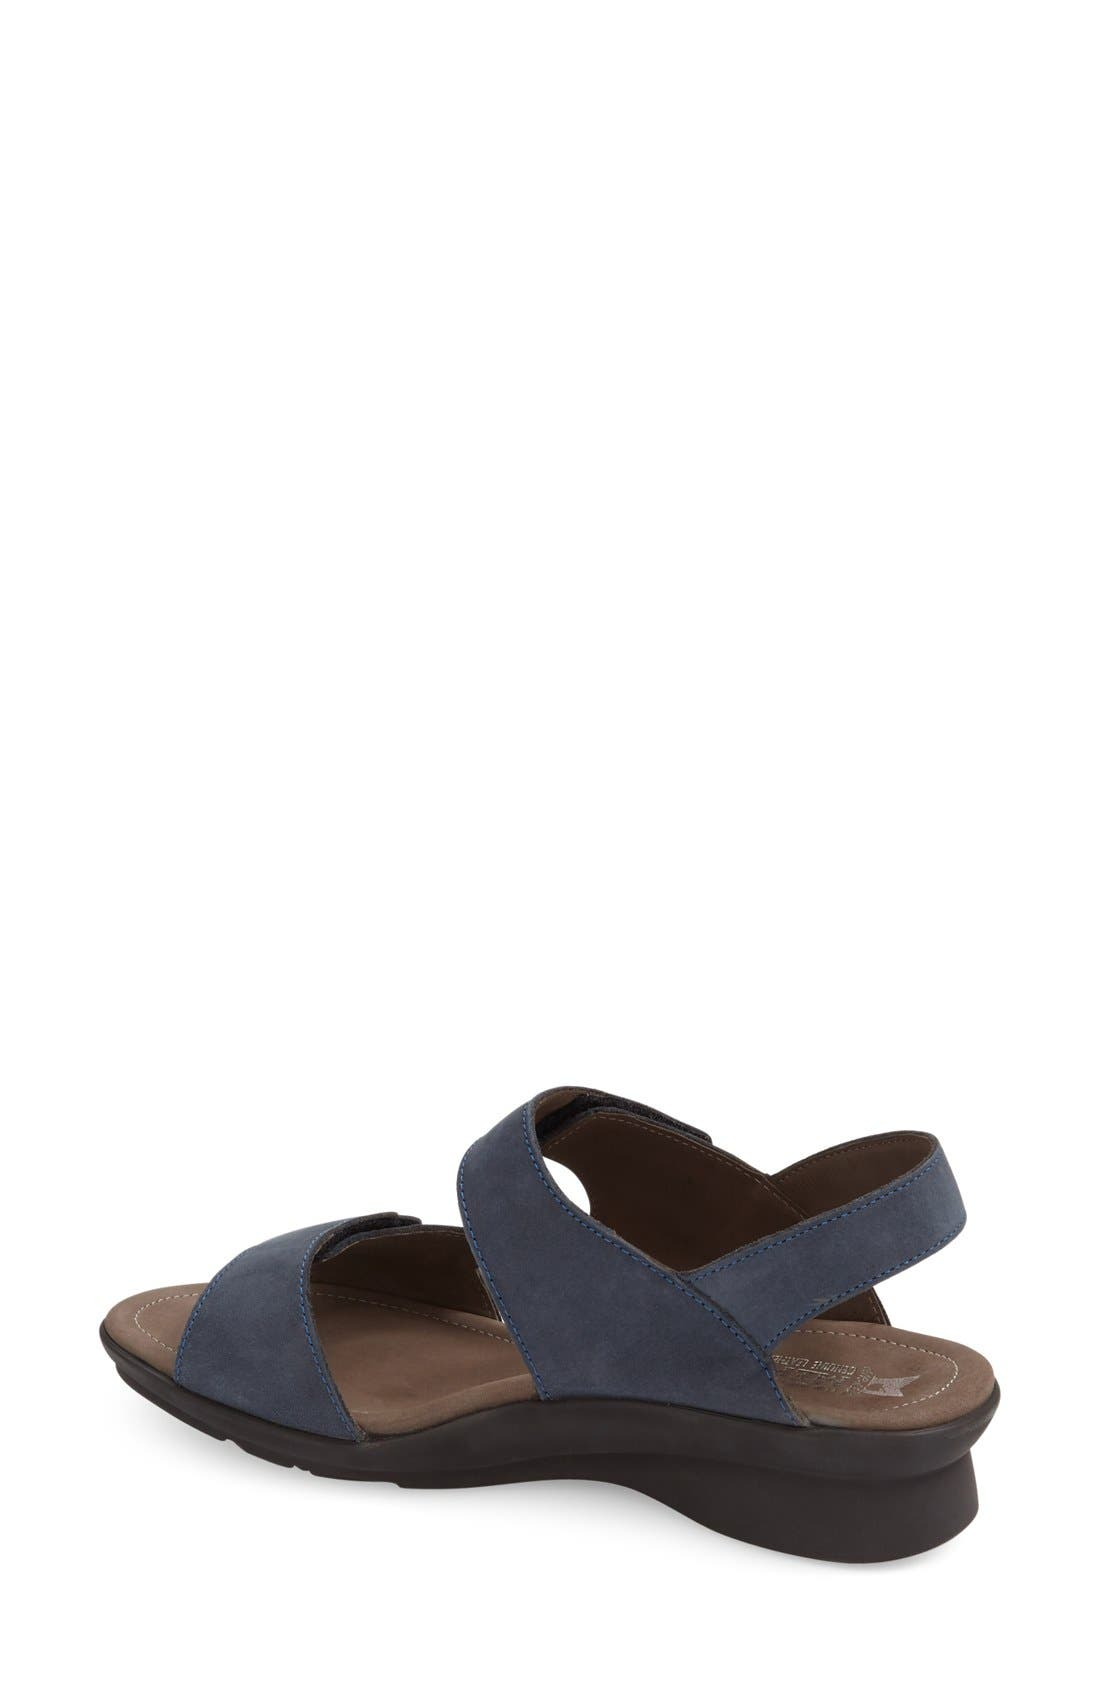 'Prudy' Leather Sandal,                             Alternate thumbnail 2, color,                             Navy Nubuck Leather